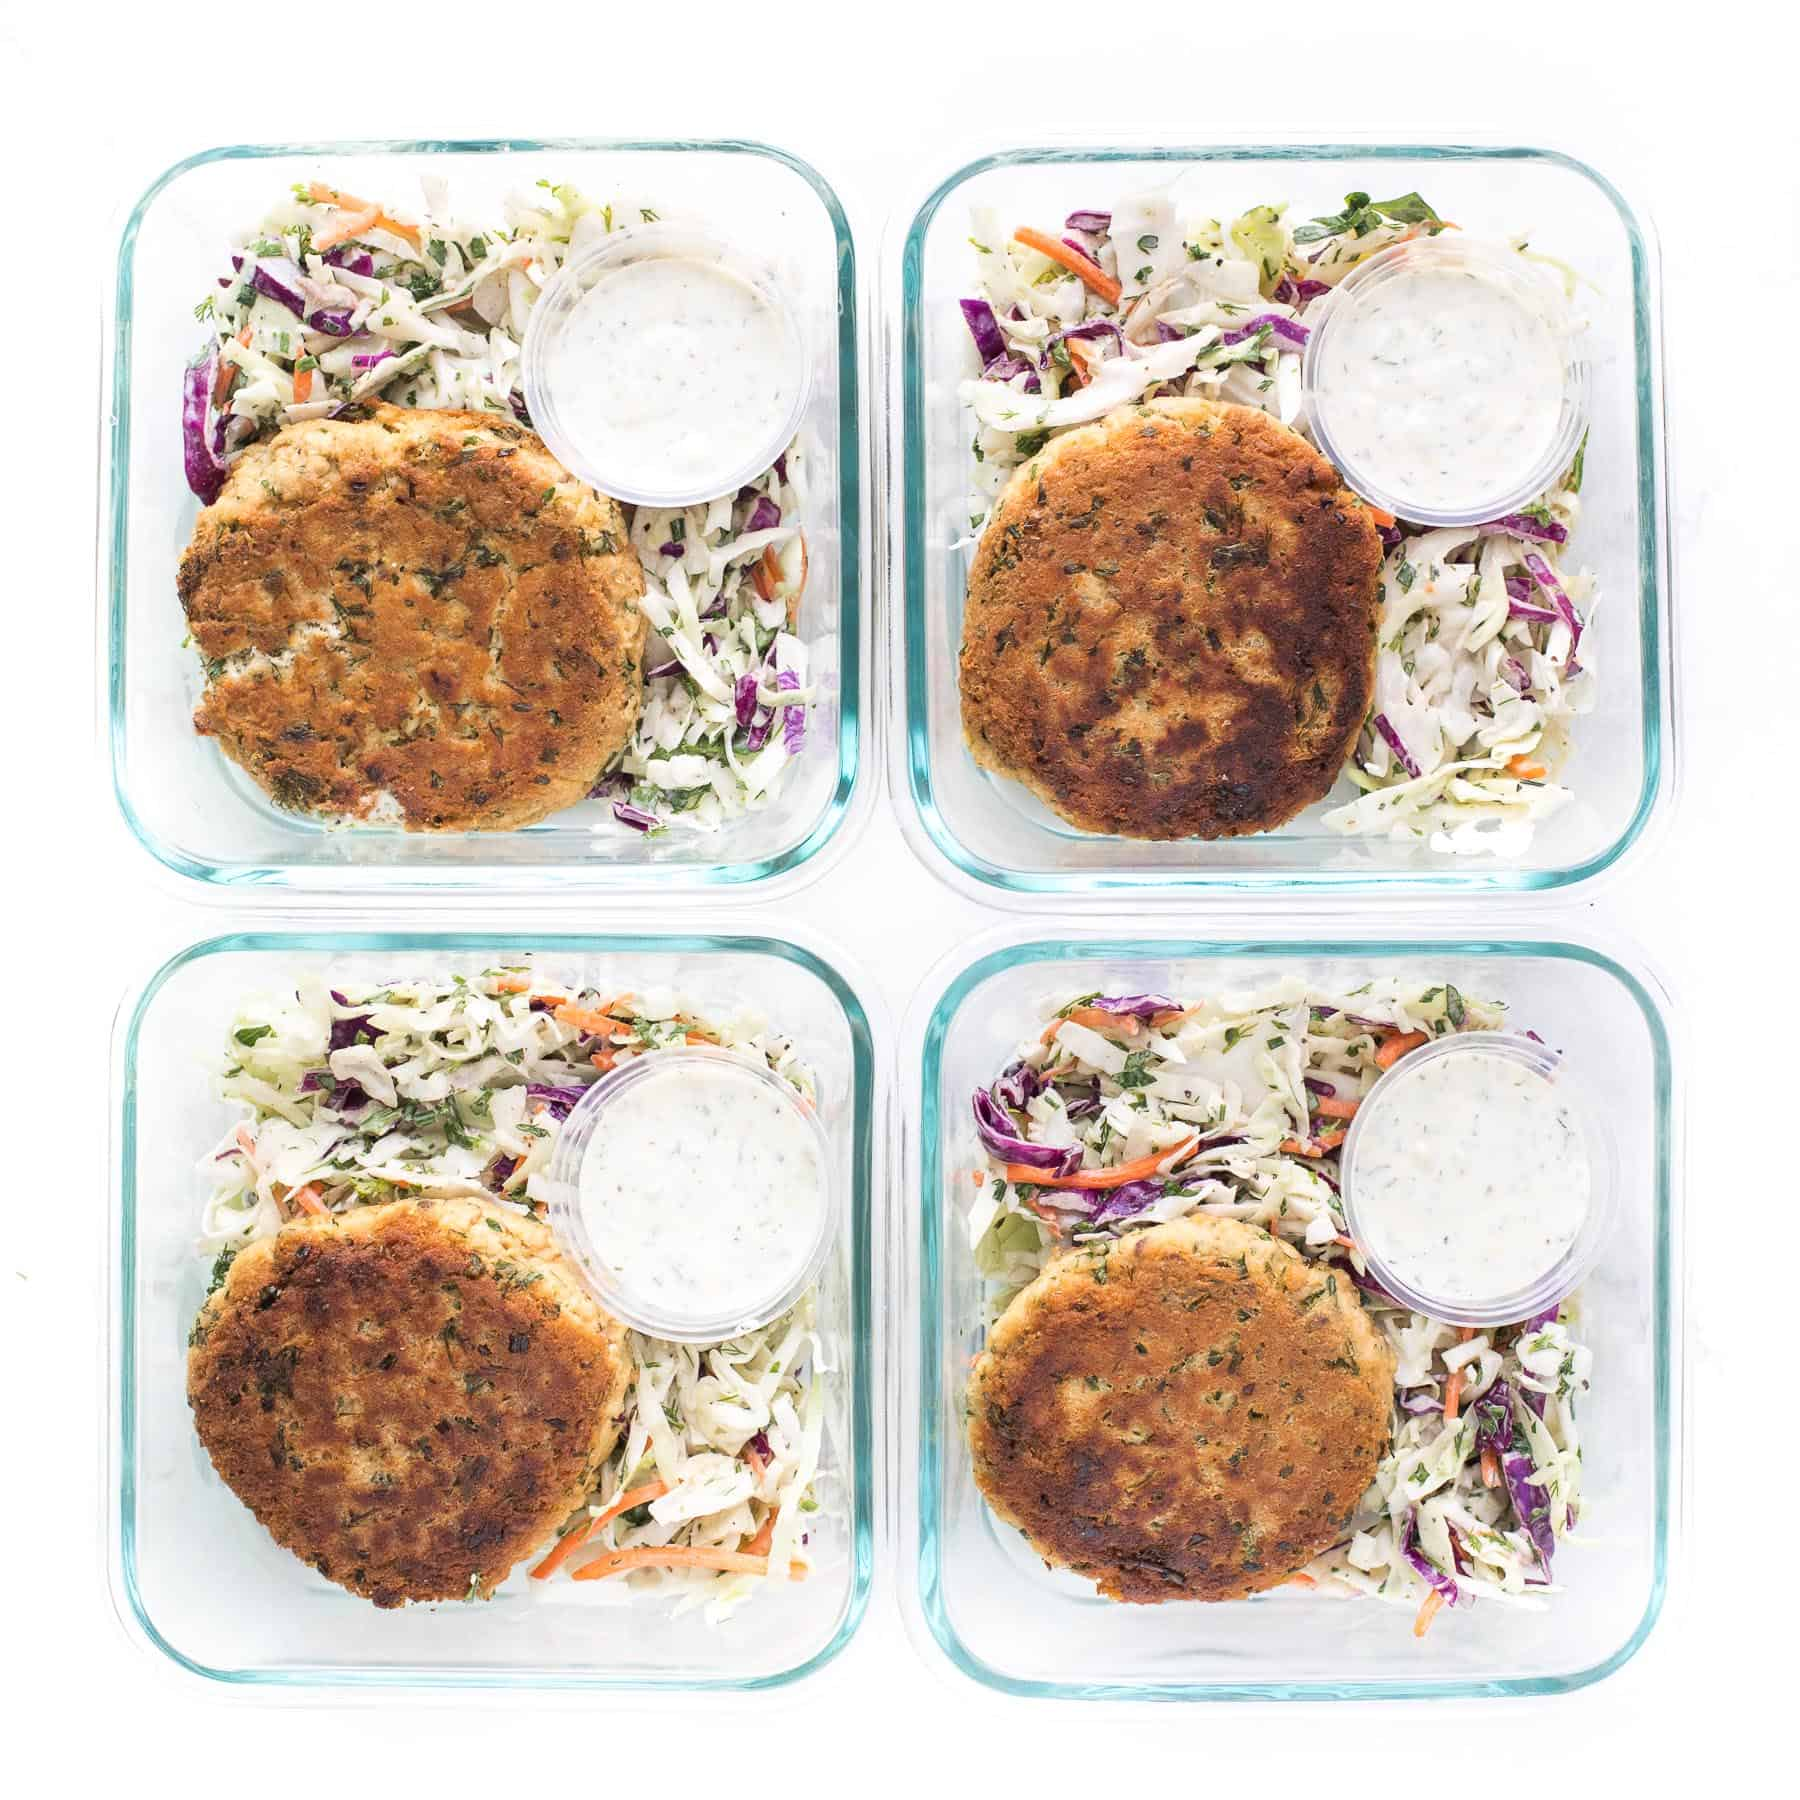 Meal prep of salmon cakes with coleslaw and aioli